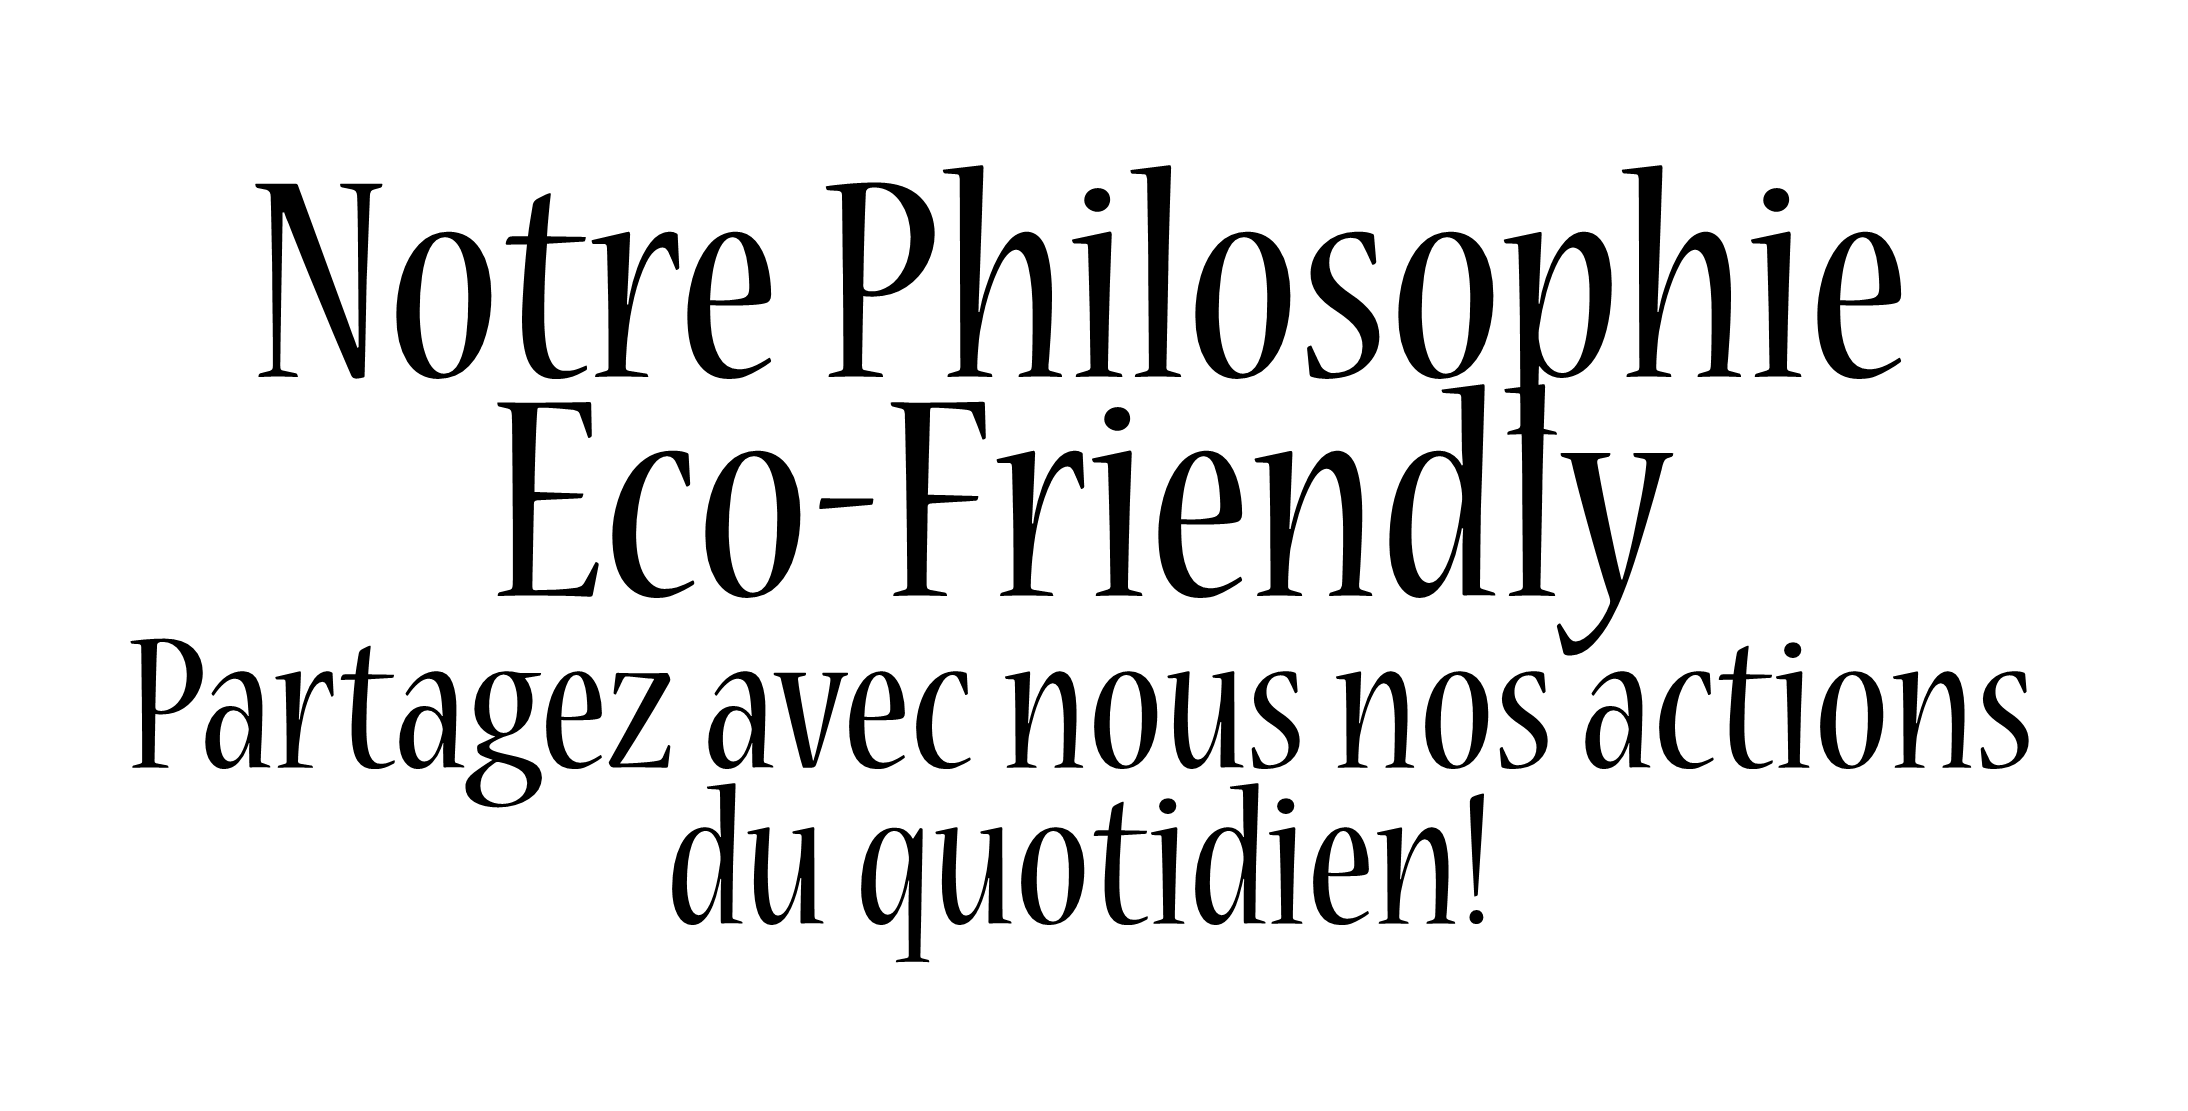 Philosophie éco-friendly